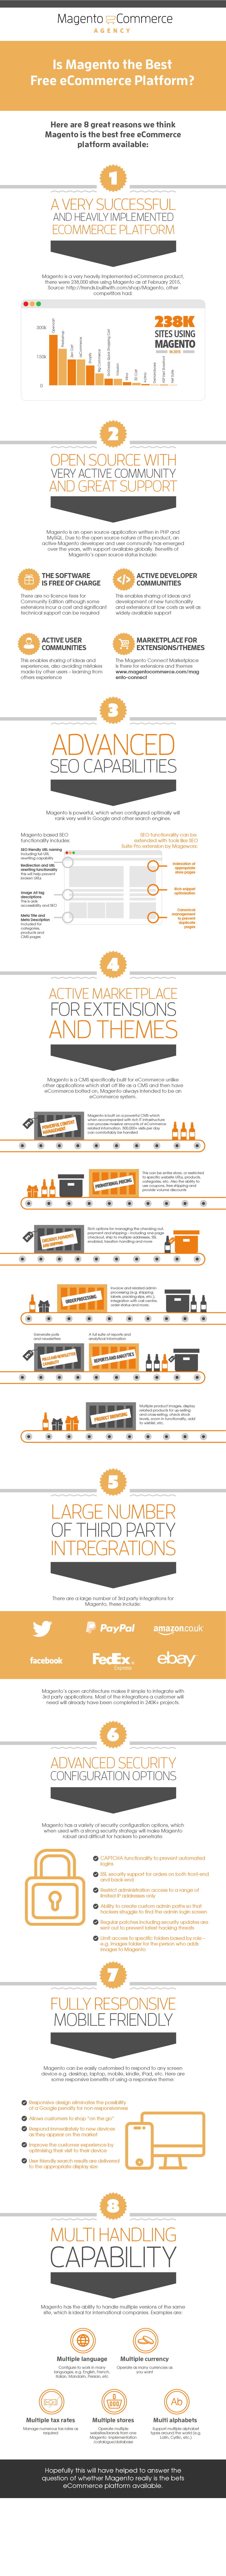 Infographic on why Magento is the world's leading eCommerce system